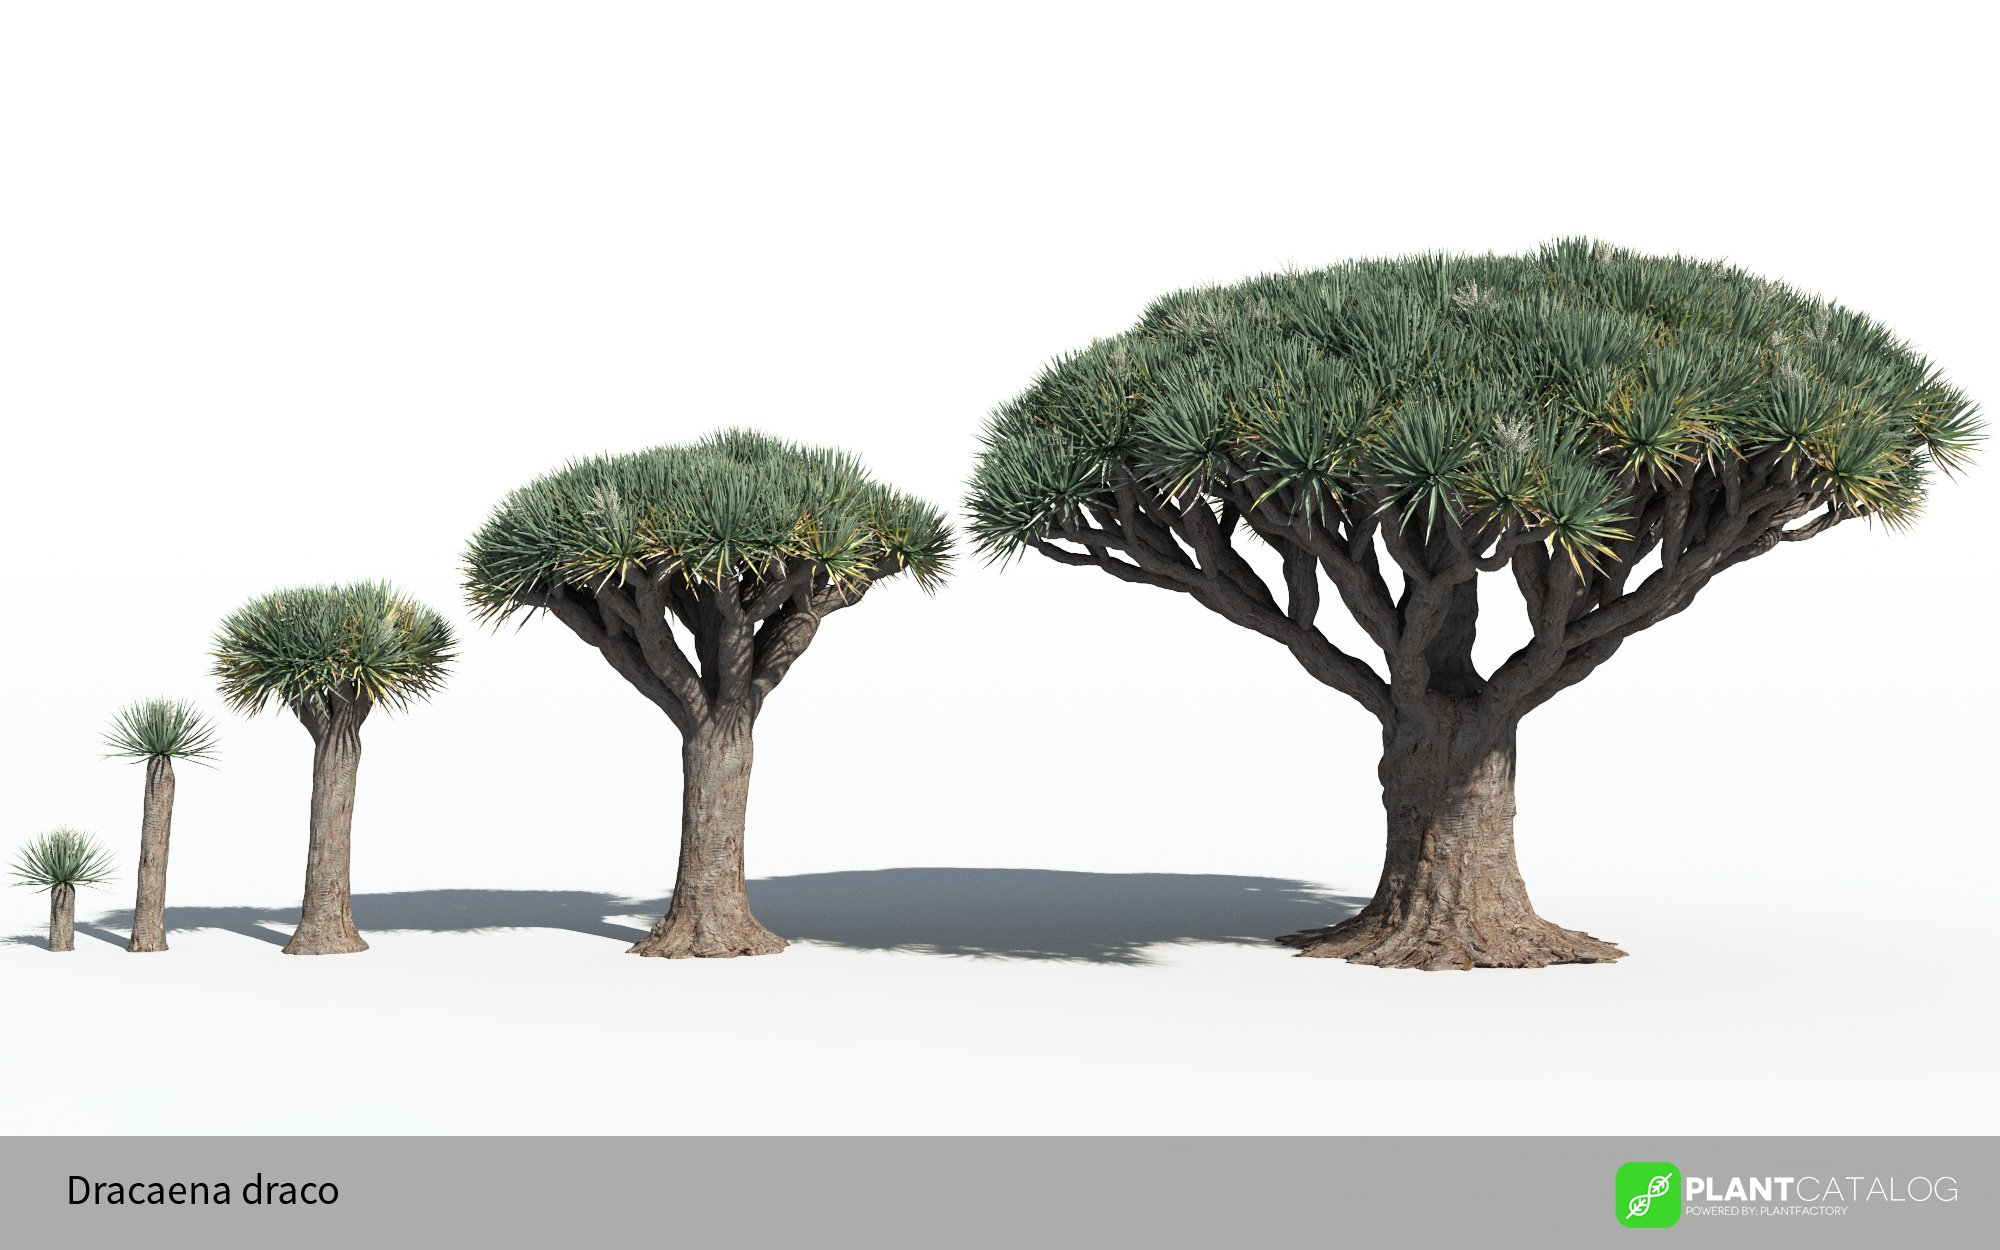 3D model of the Dragon tree - Dracaena draco - from the PlantCatalog, rendered in VUE